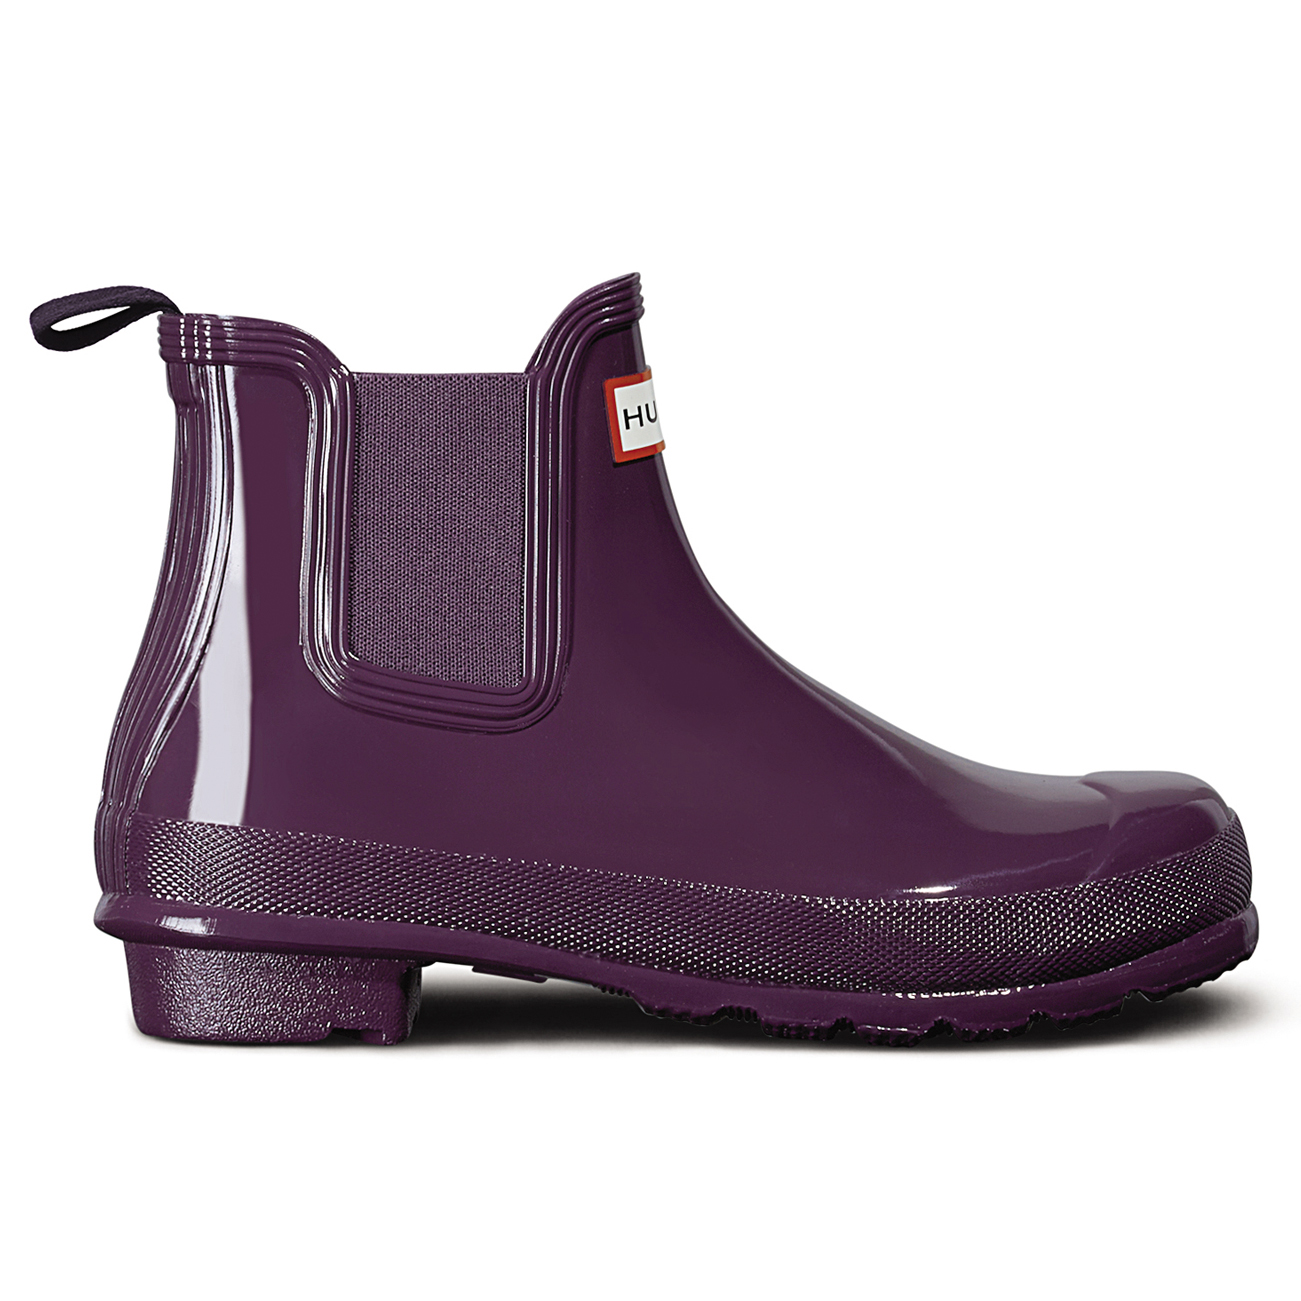 Shop the SS18 collection including our iconic Hunter rainboots for women, men and kids. Free Shipping and Returns.